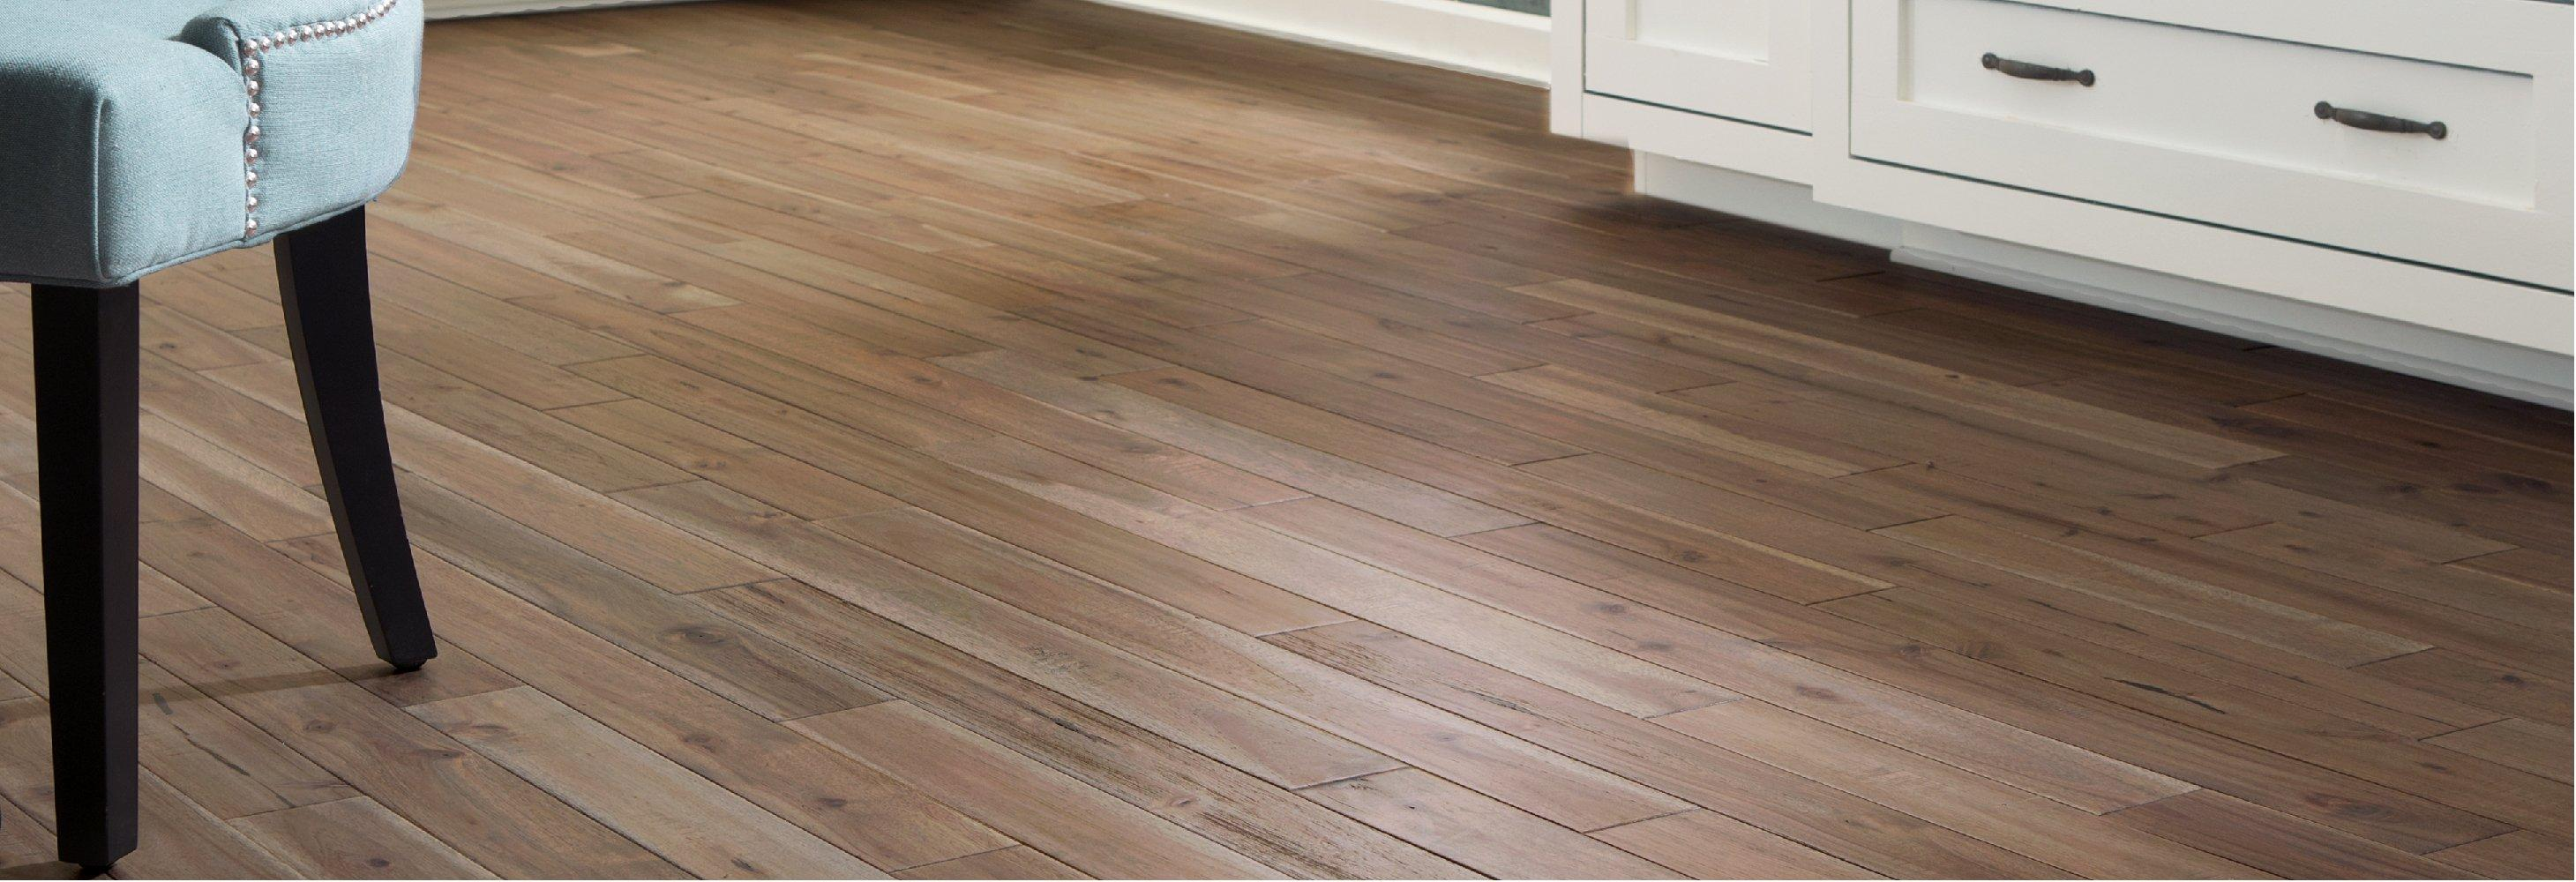 images for hardwood flooring